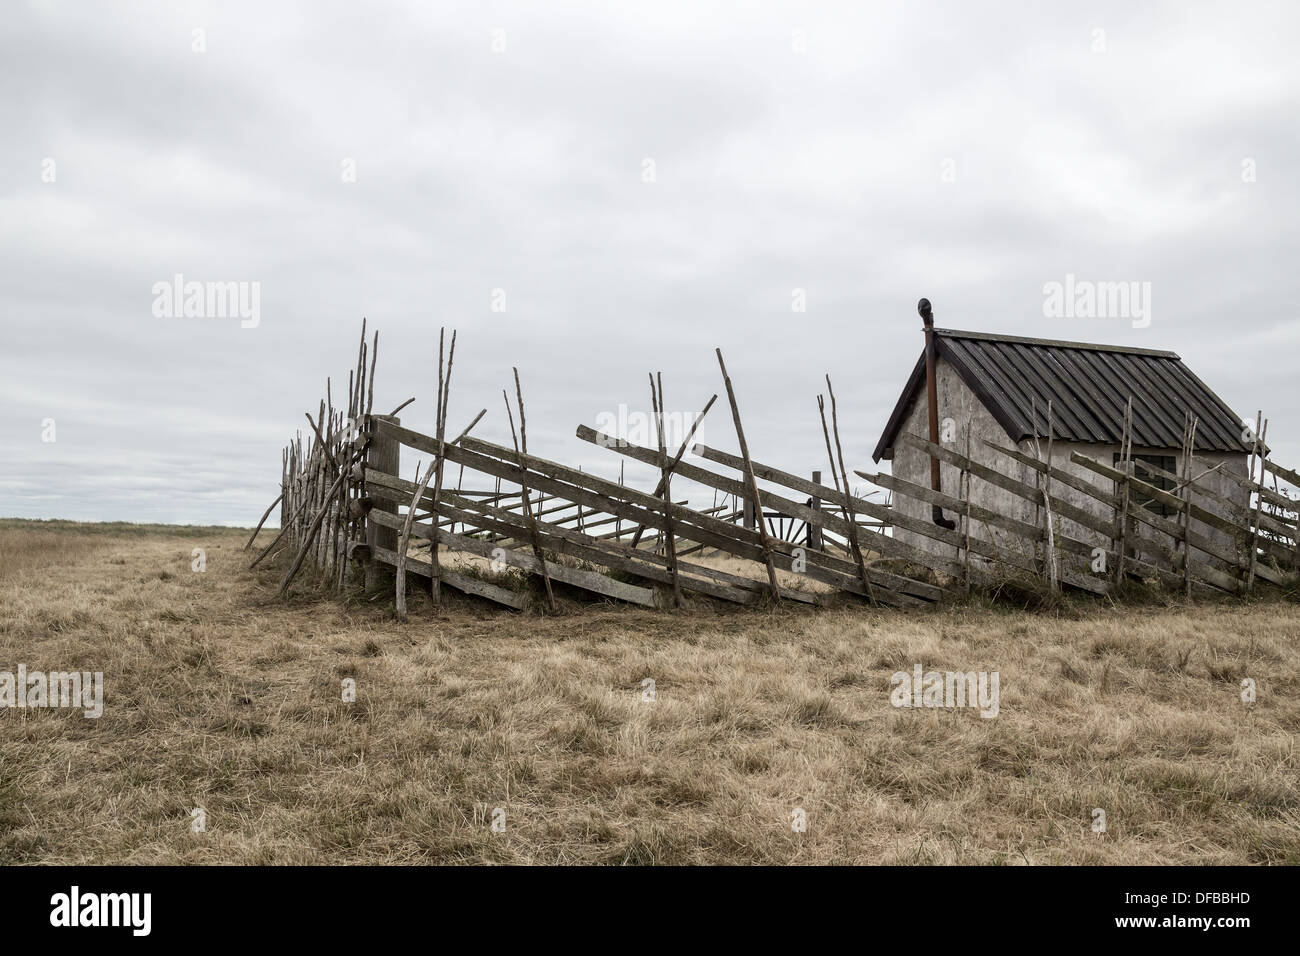 Old farmhouse in the field. Island of Gotland, Sweden. - Stock Image